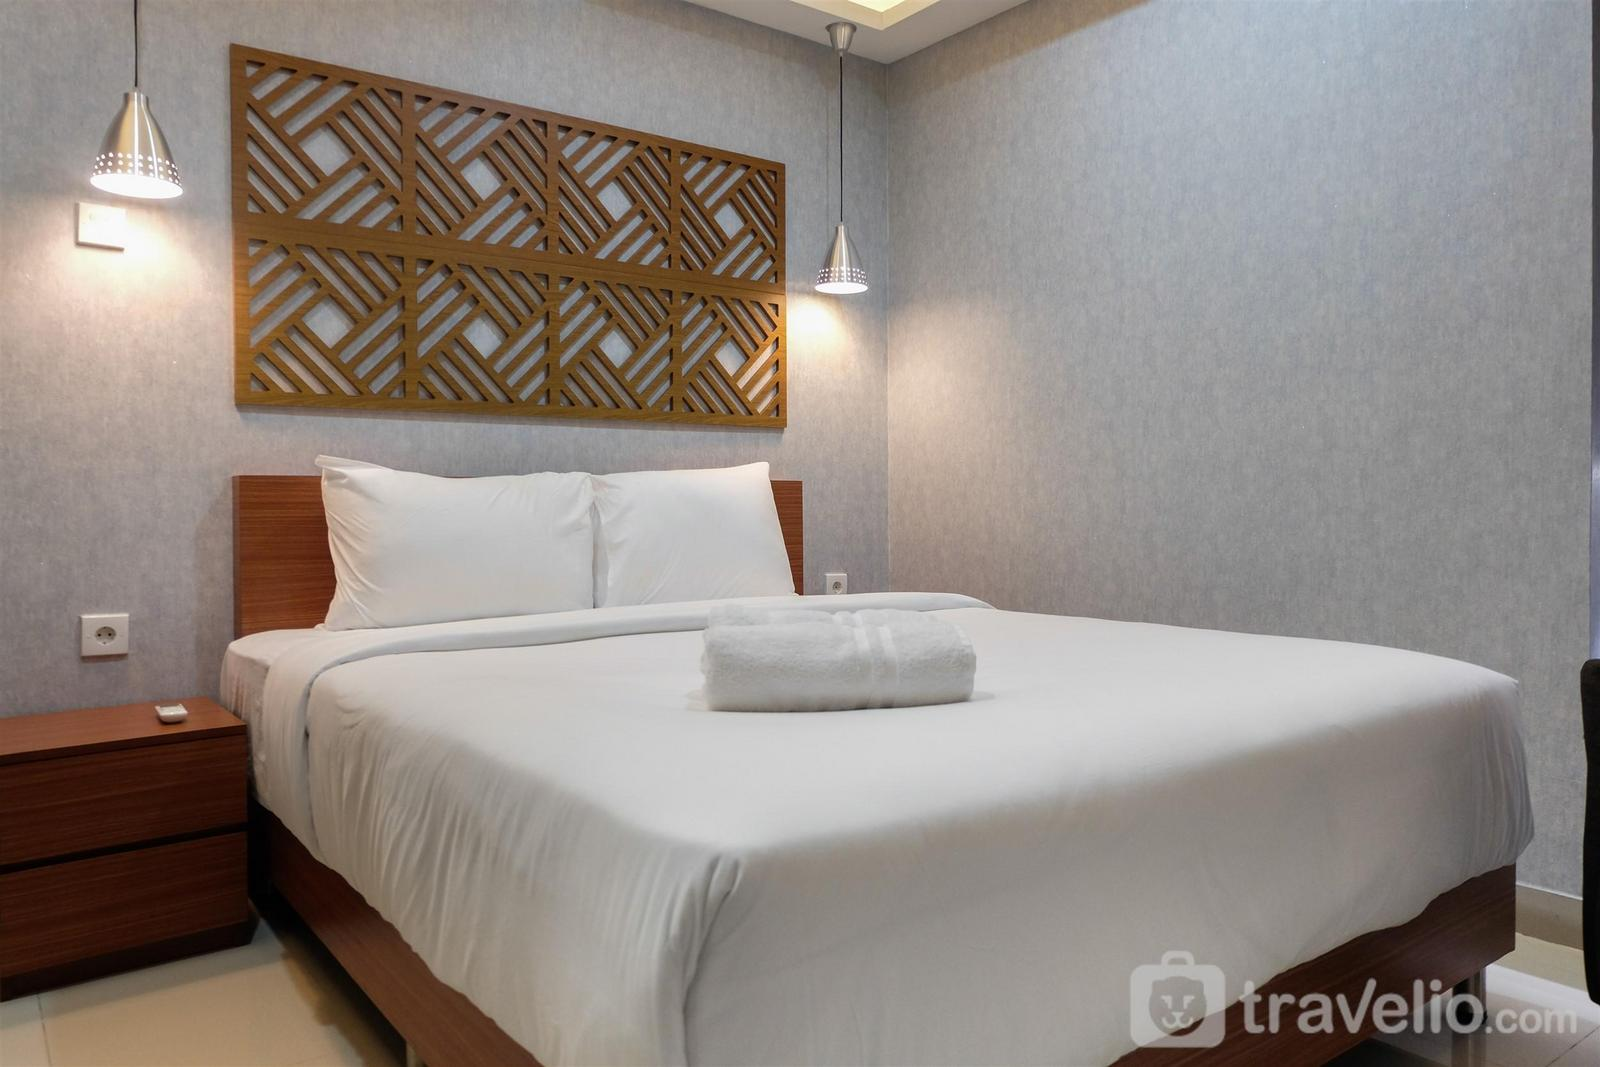 The Oasis Cikarang - Comfortable 2BR @The Oasis Apartment By Travelio